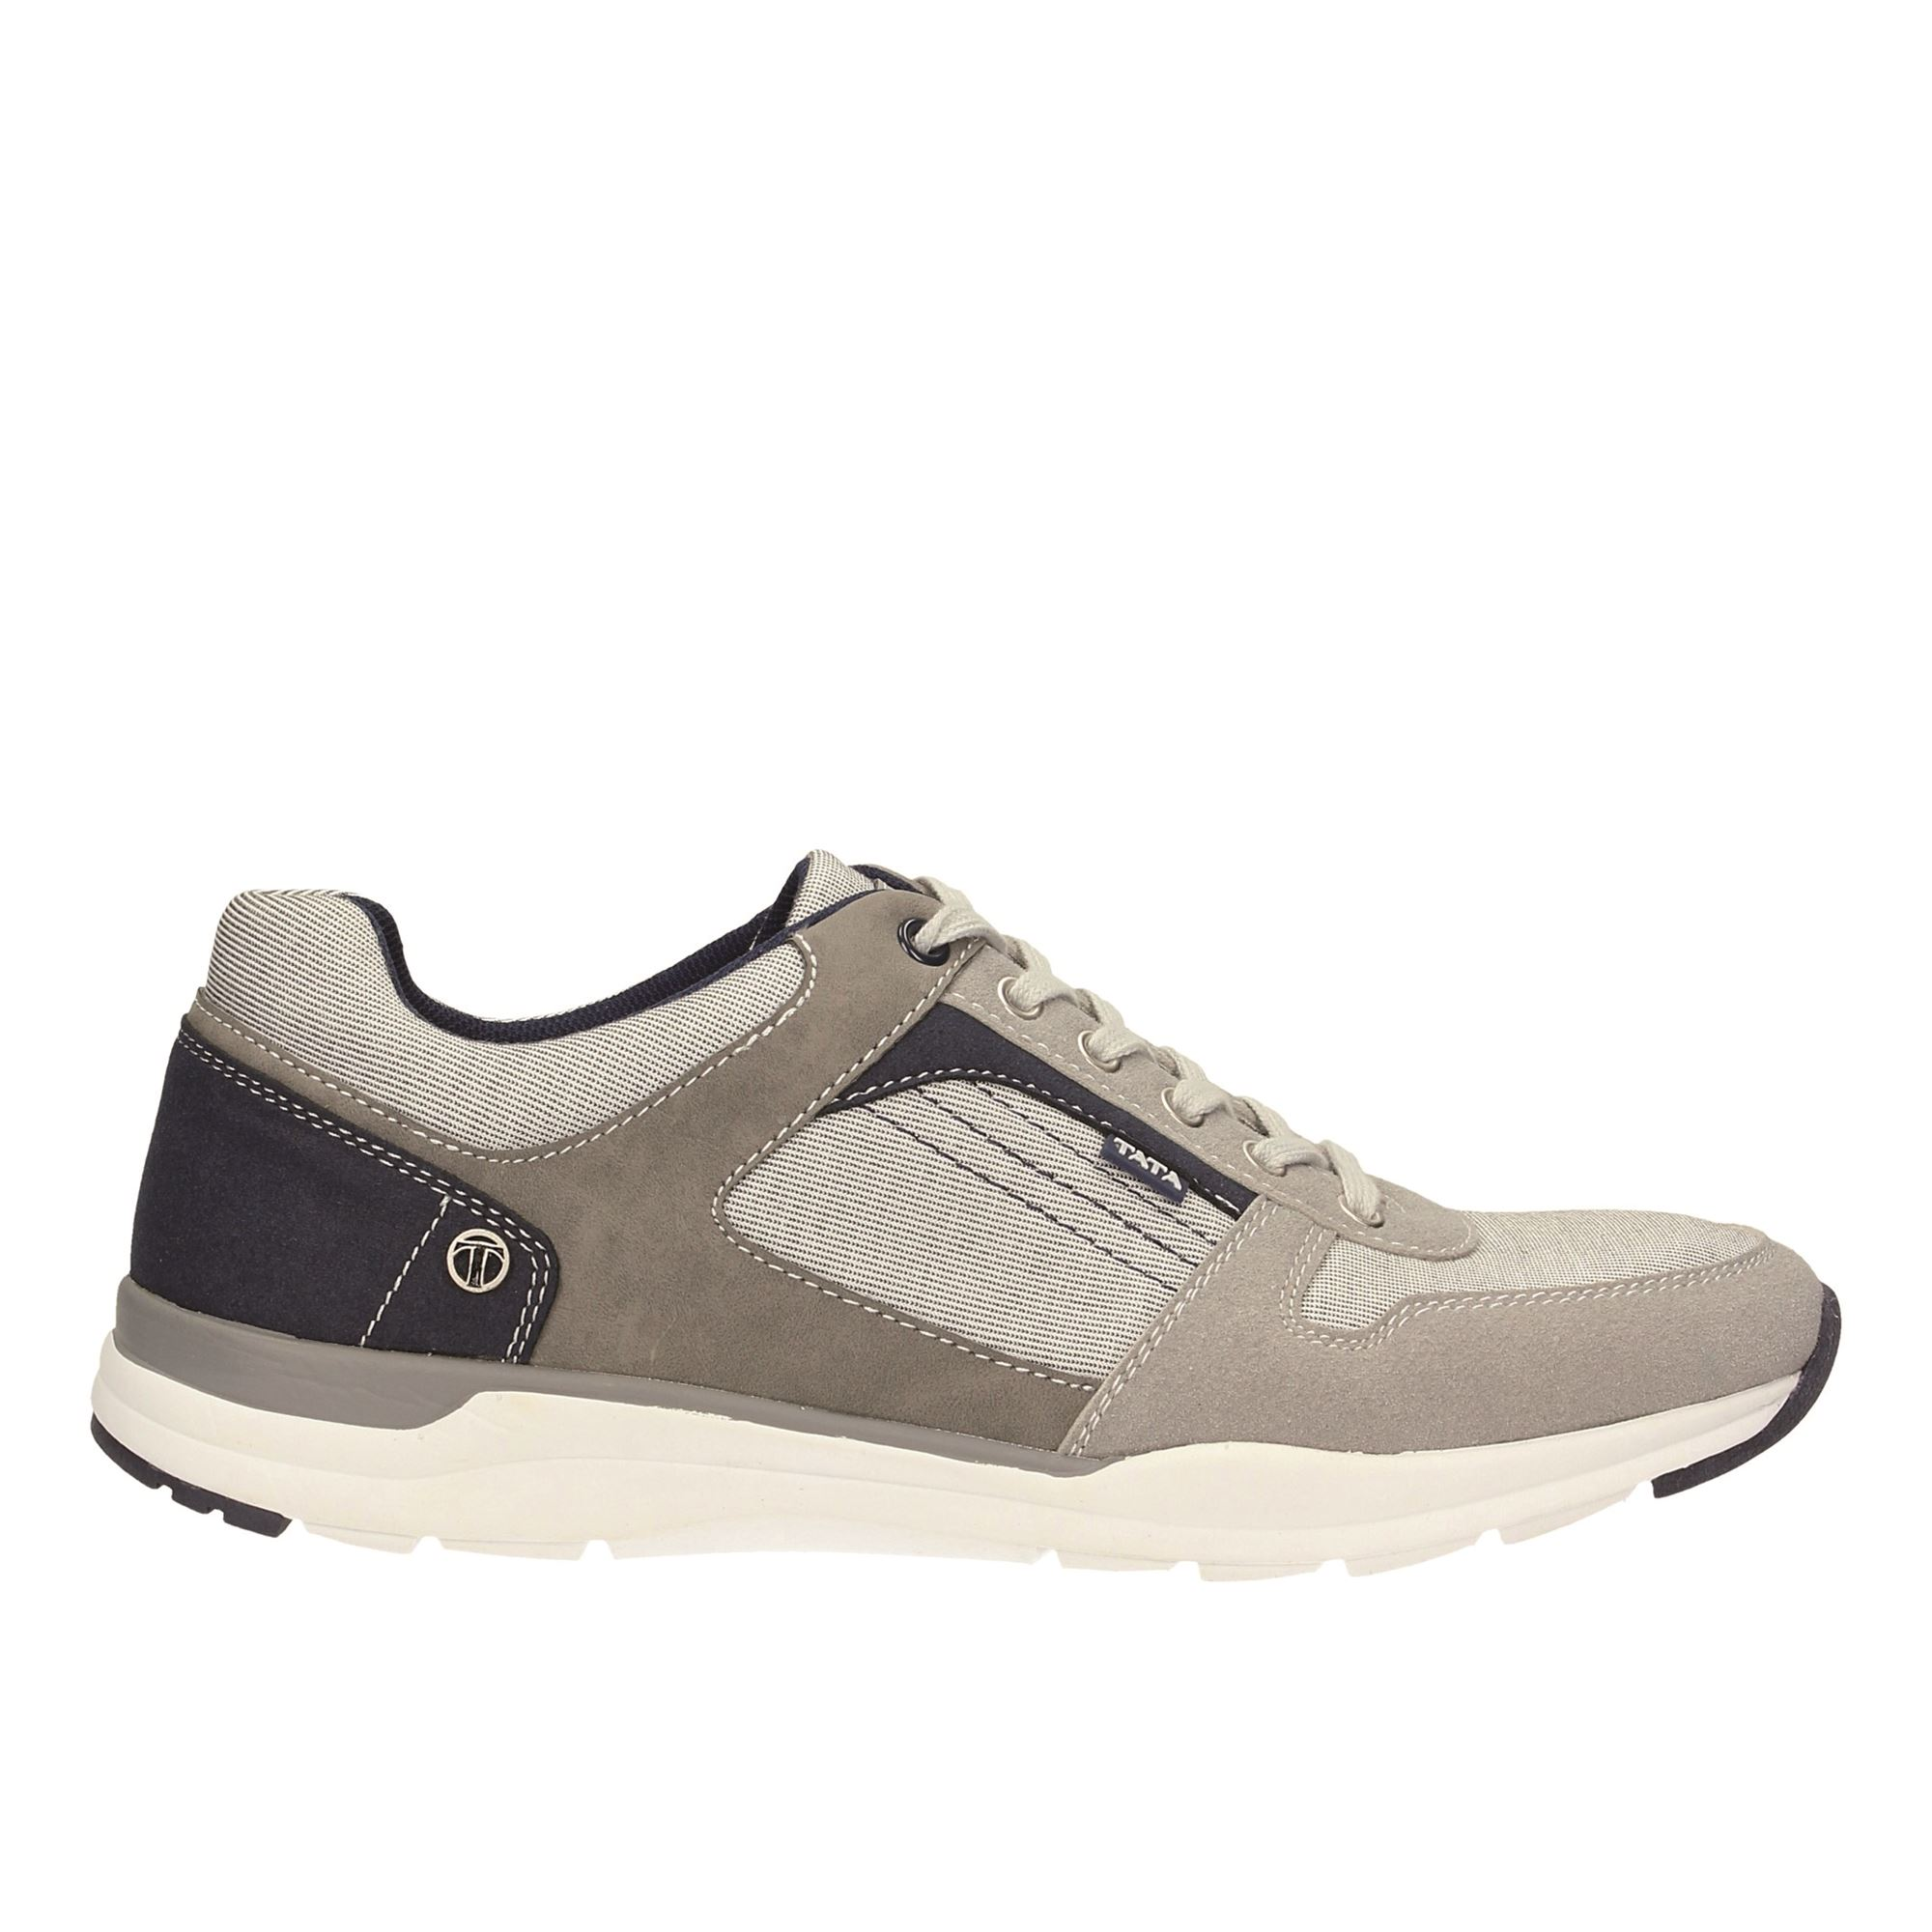 Tata Italia Shoes Man Sneakers Grey 624070